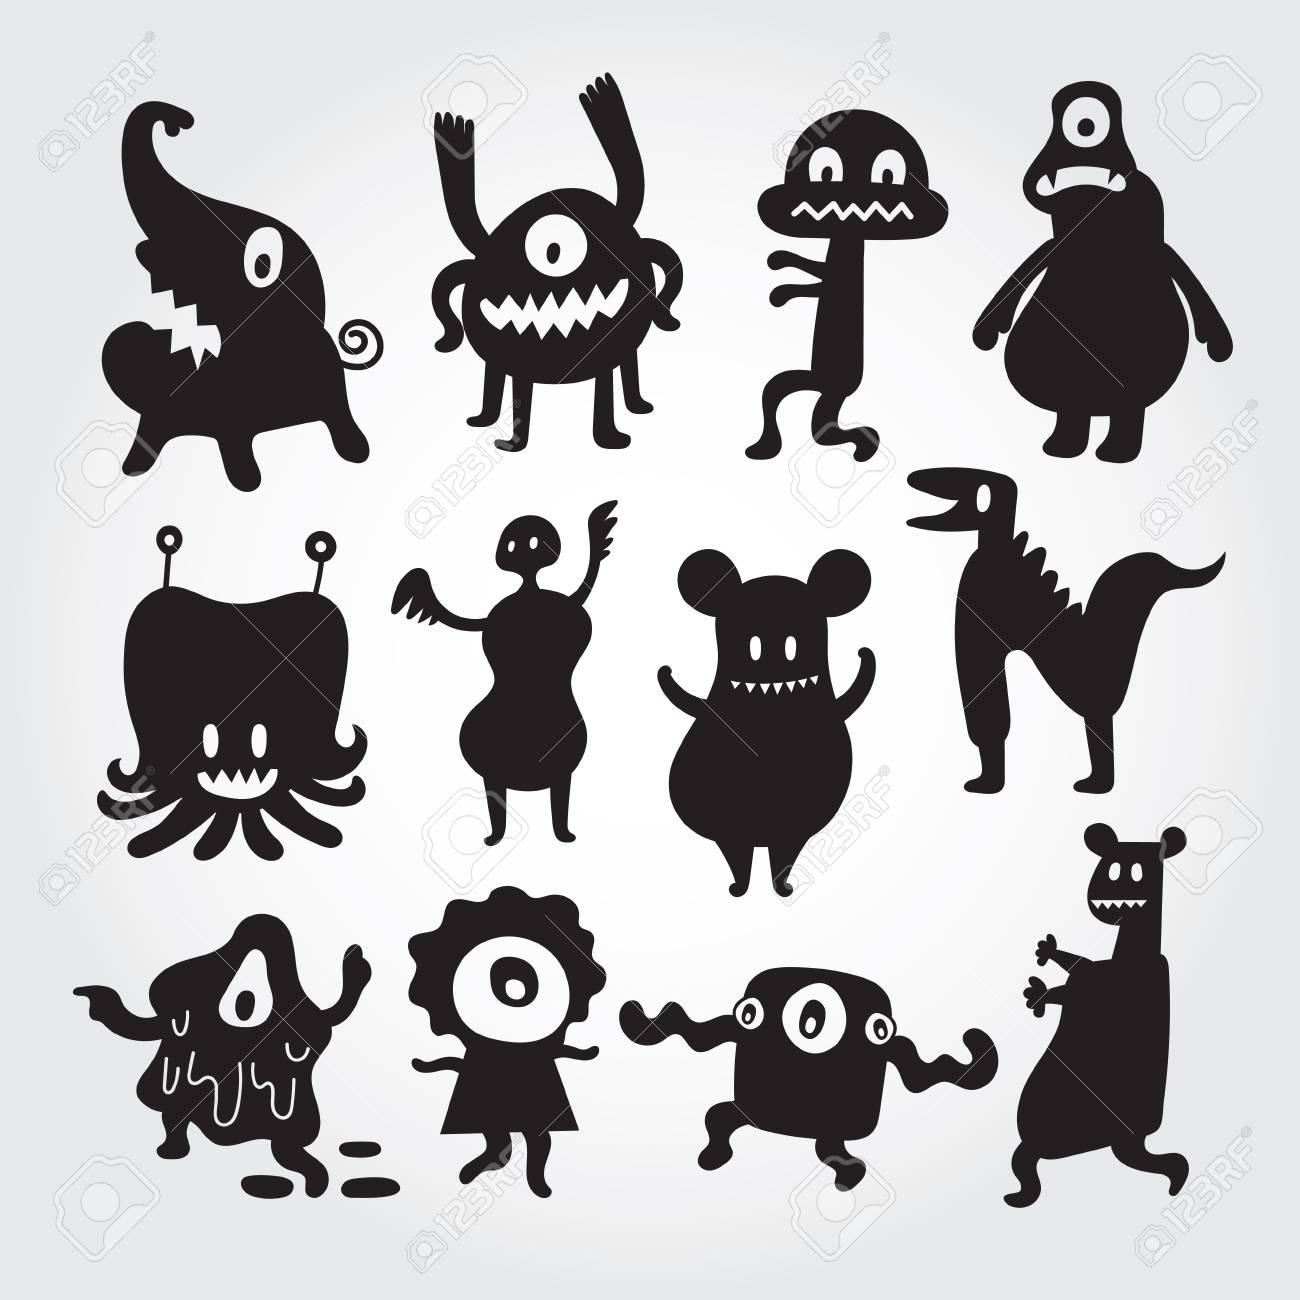 Cute Monsters Cartoon Characters Set Silhouette Black And White